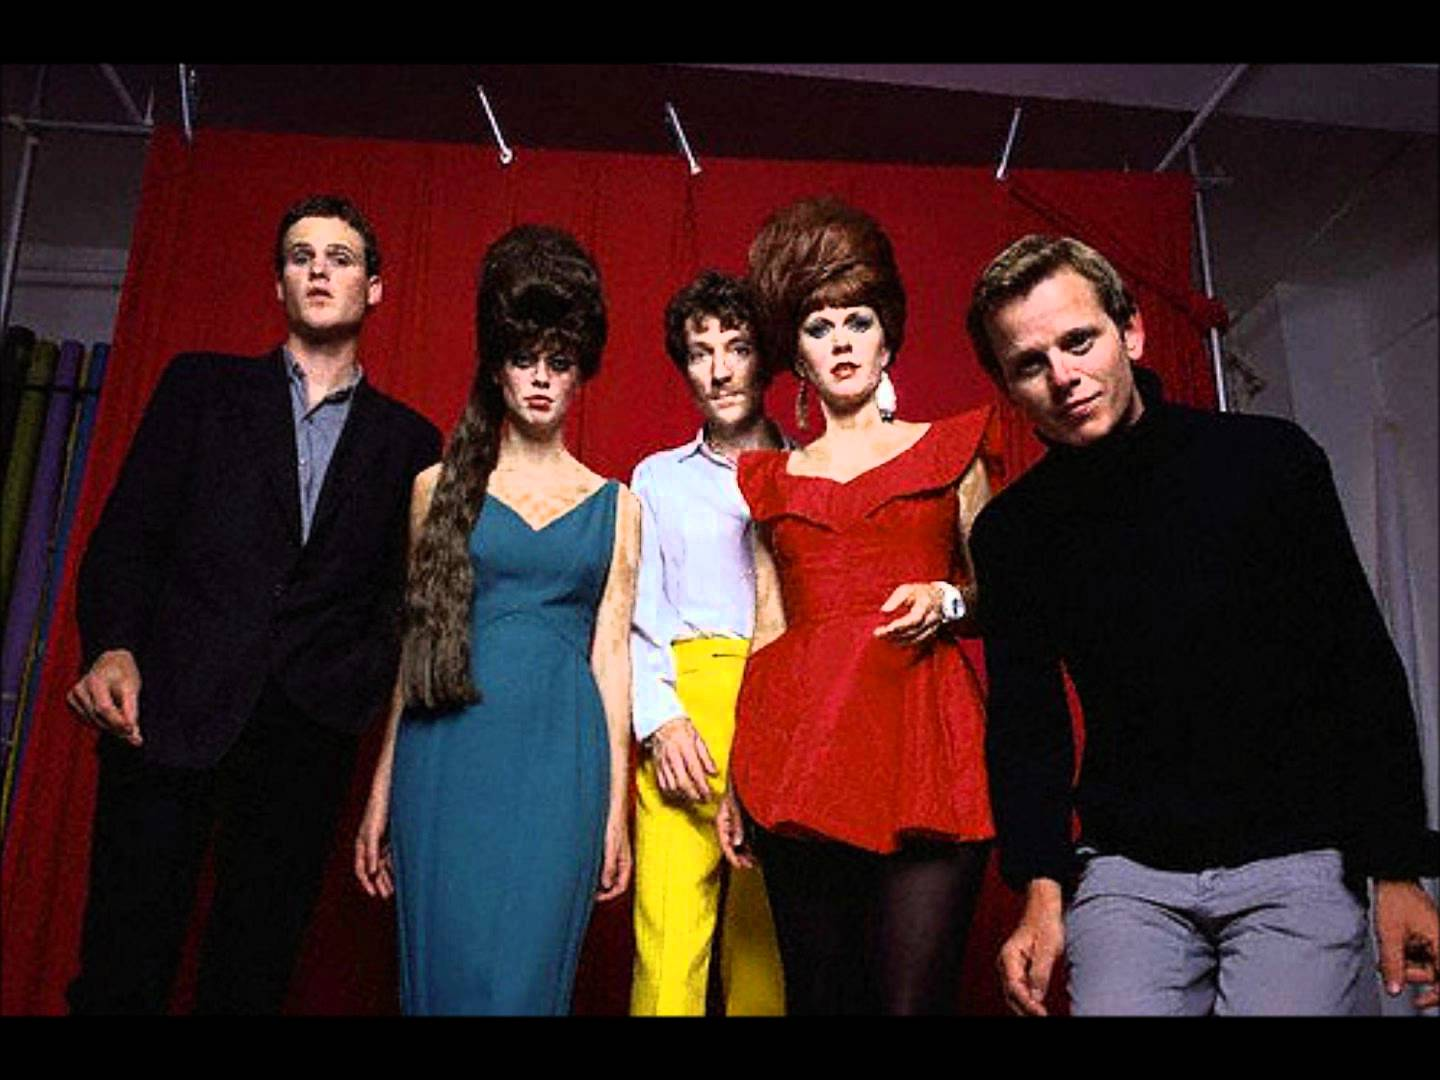 HQ The B 52s Wallpapers | File 120.69Kb